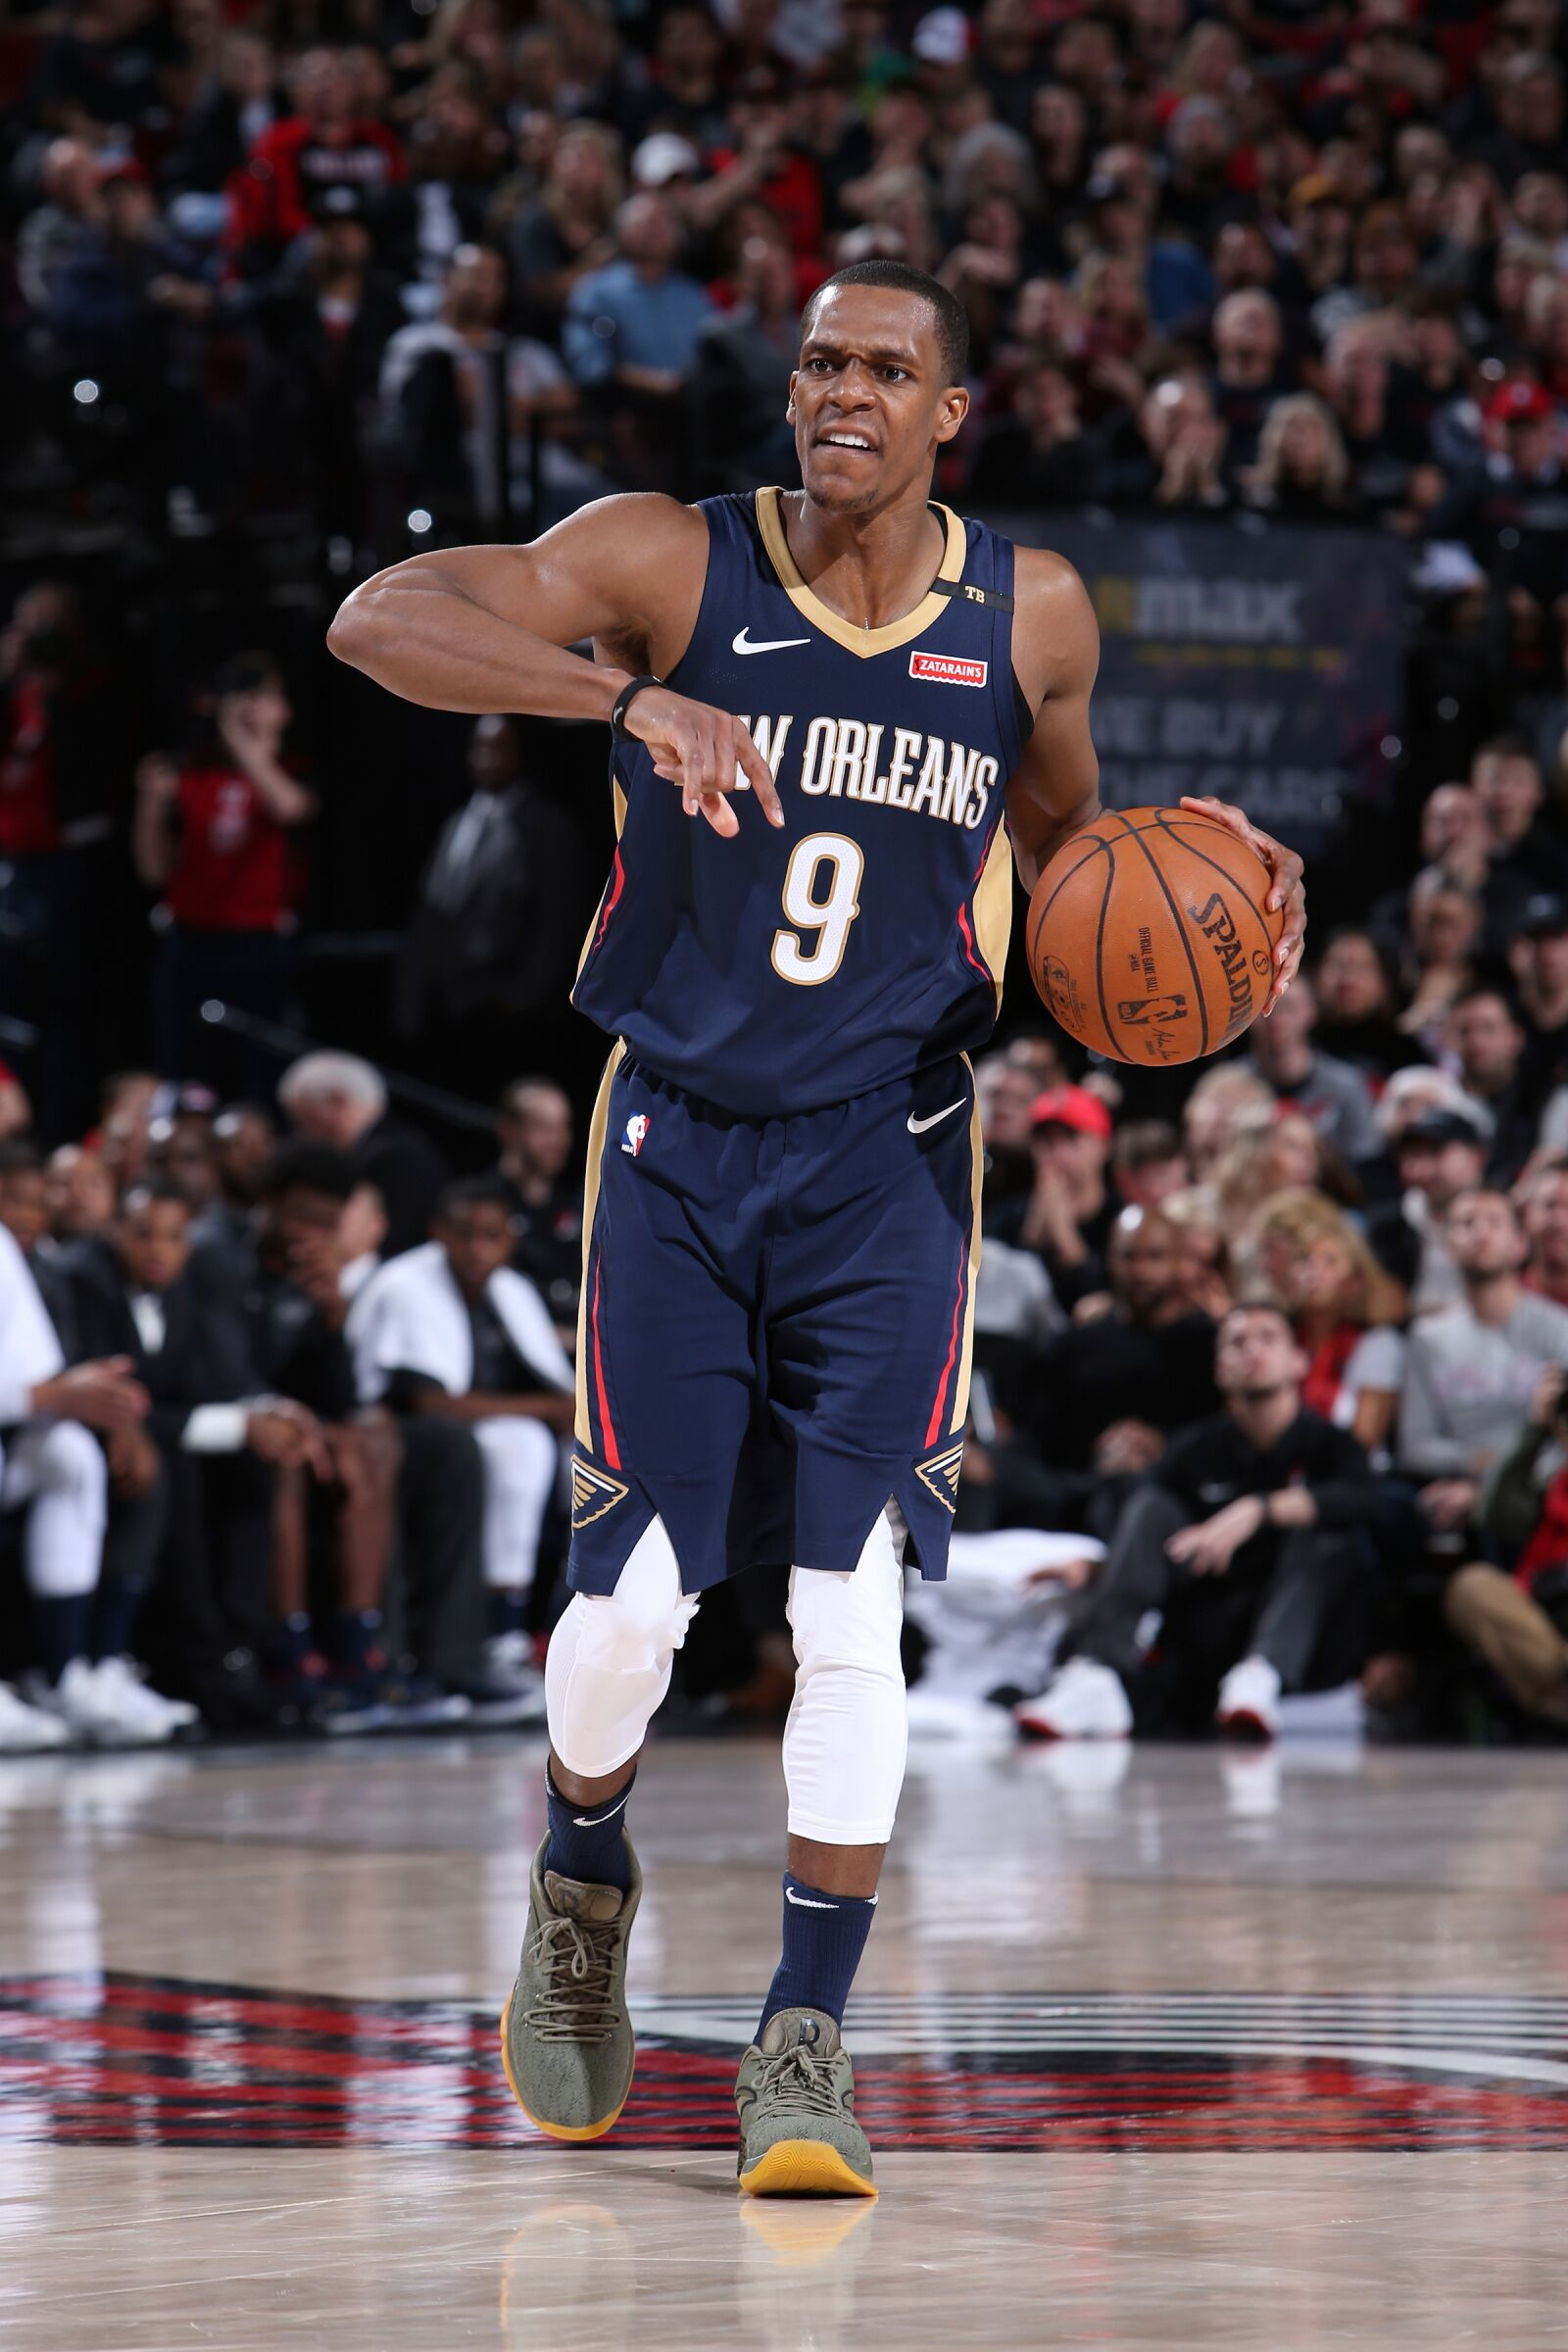 946390678-new-orleans-pelicans-v-portland-trail-blazers-game-one.jpg